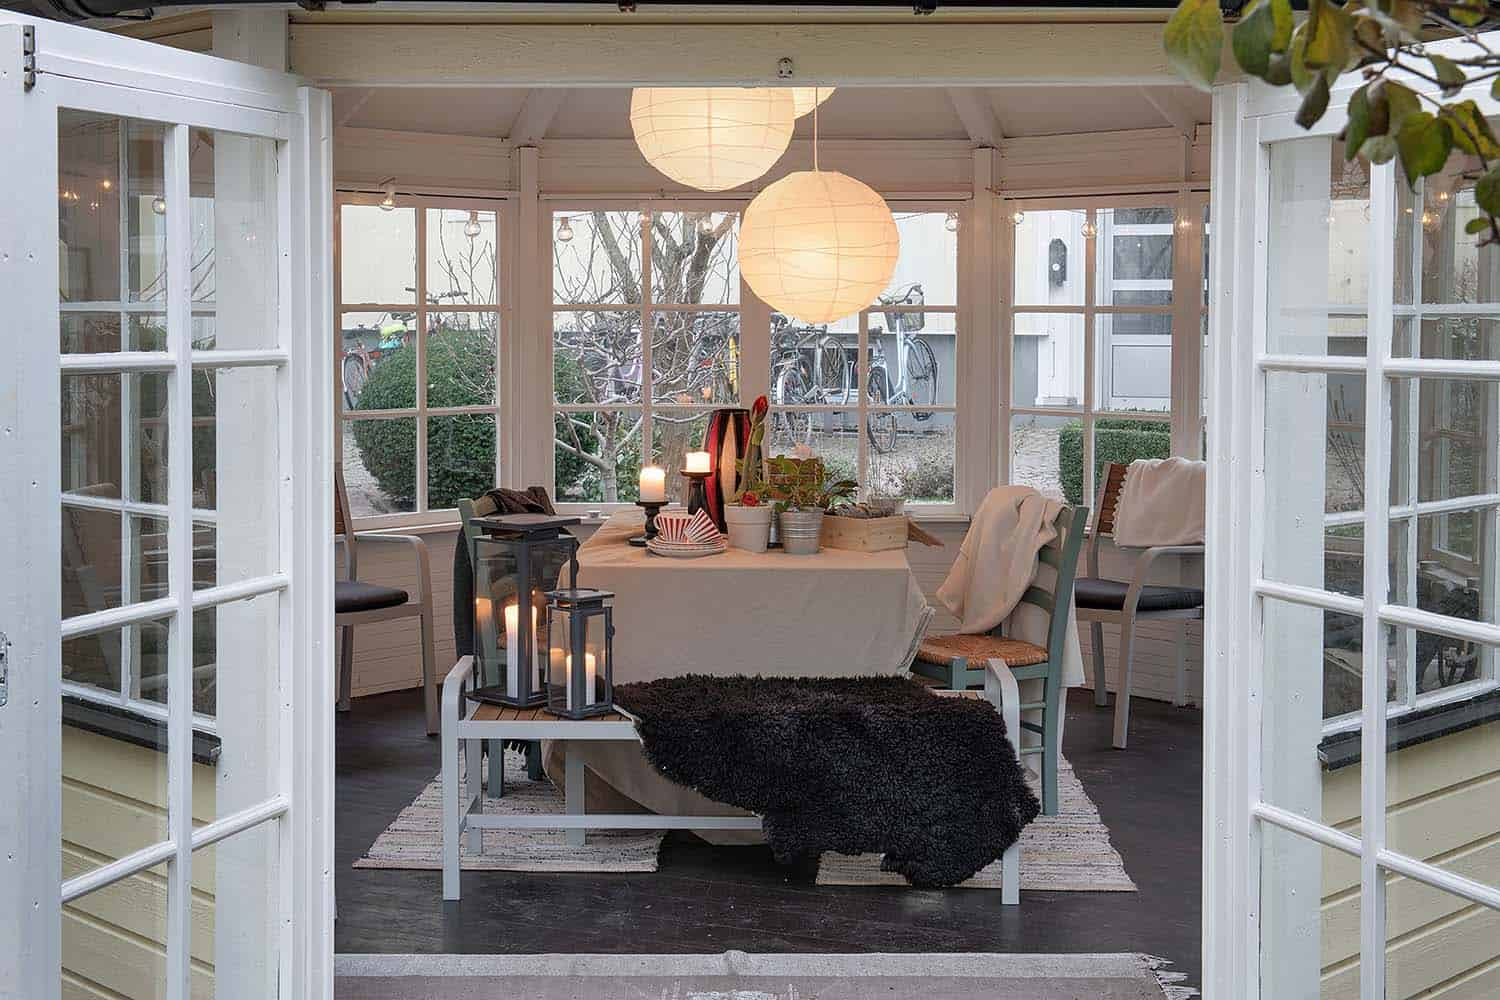 scandinavian-apartment-building-landscape-gazebo-interior